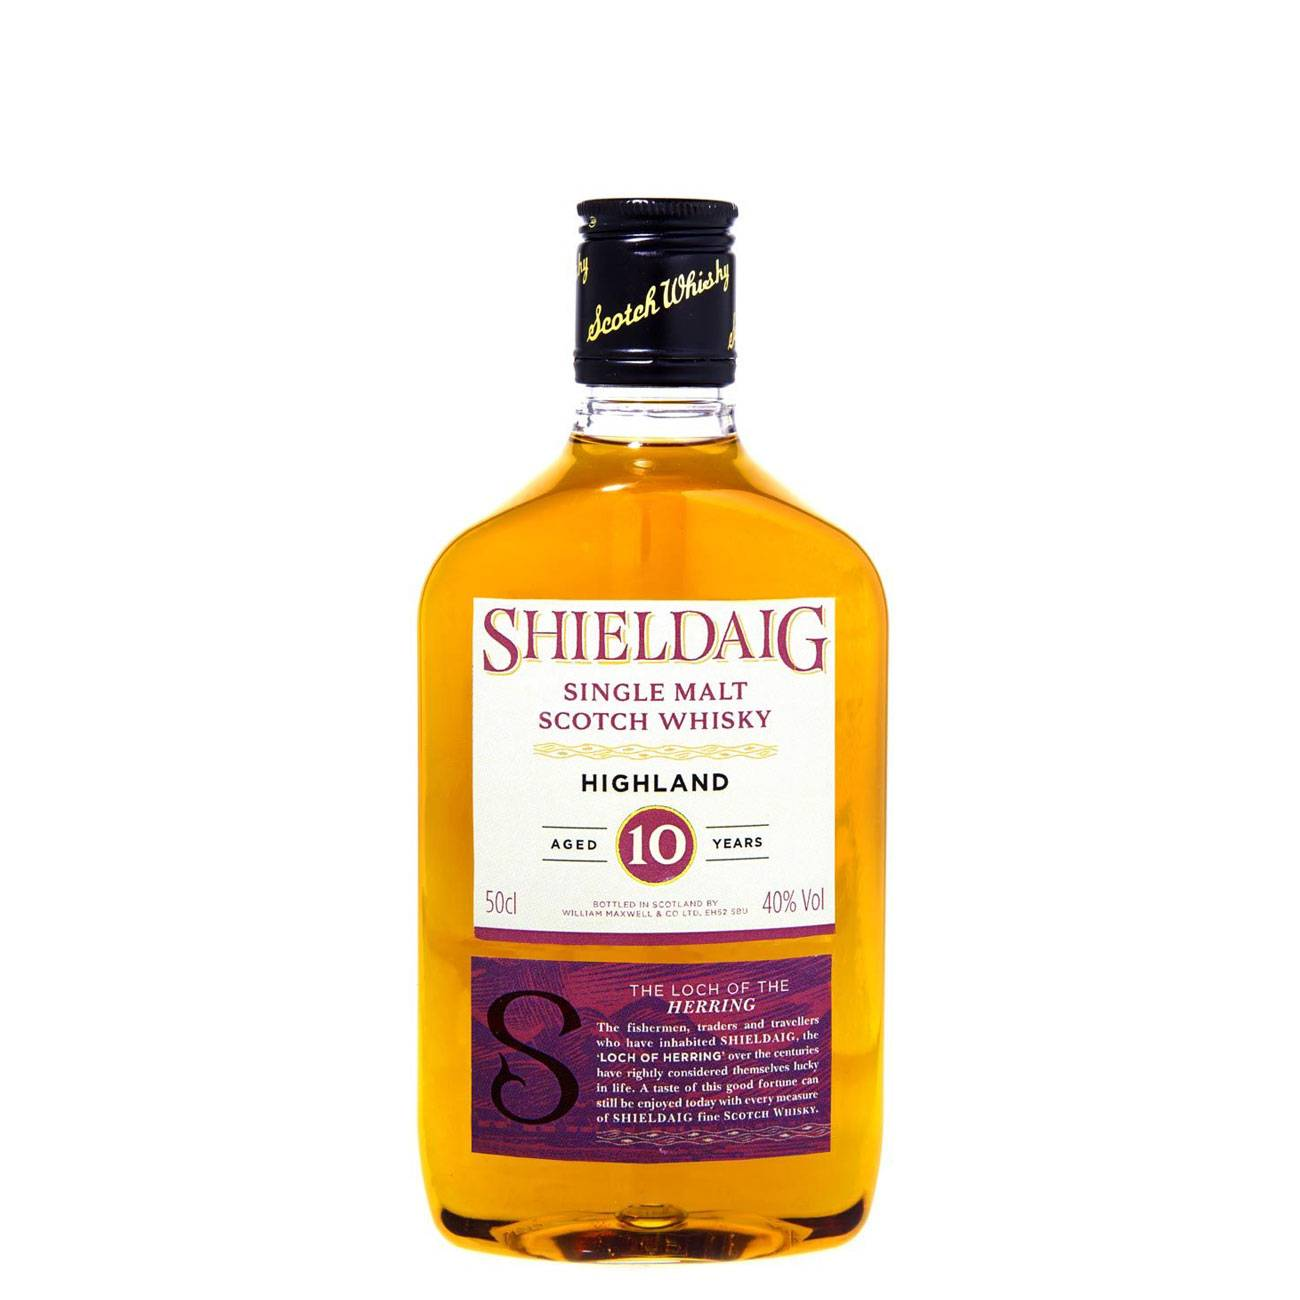 Whisky scotian, SINGLE MALT PET 500 ML, Shieldaig